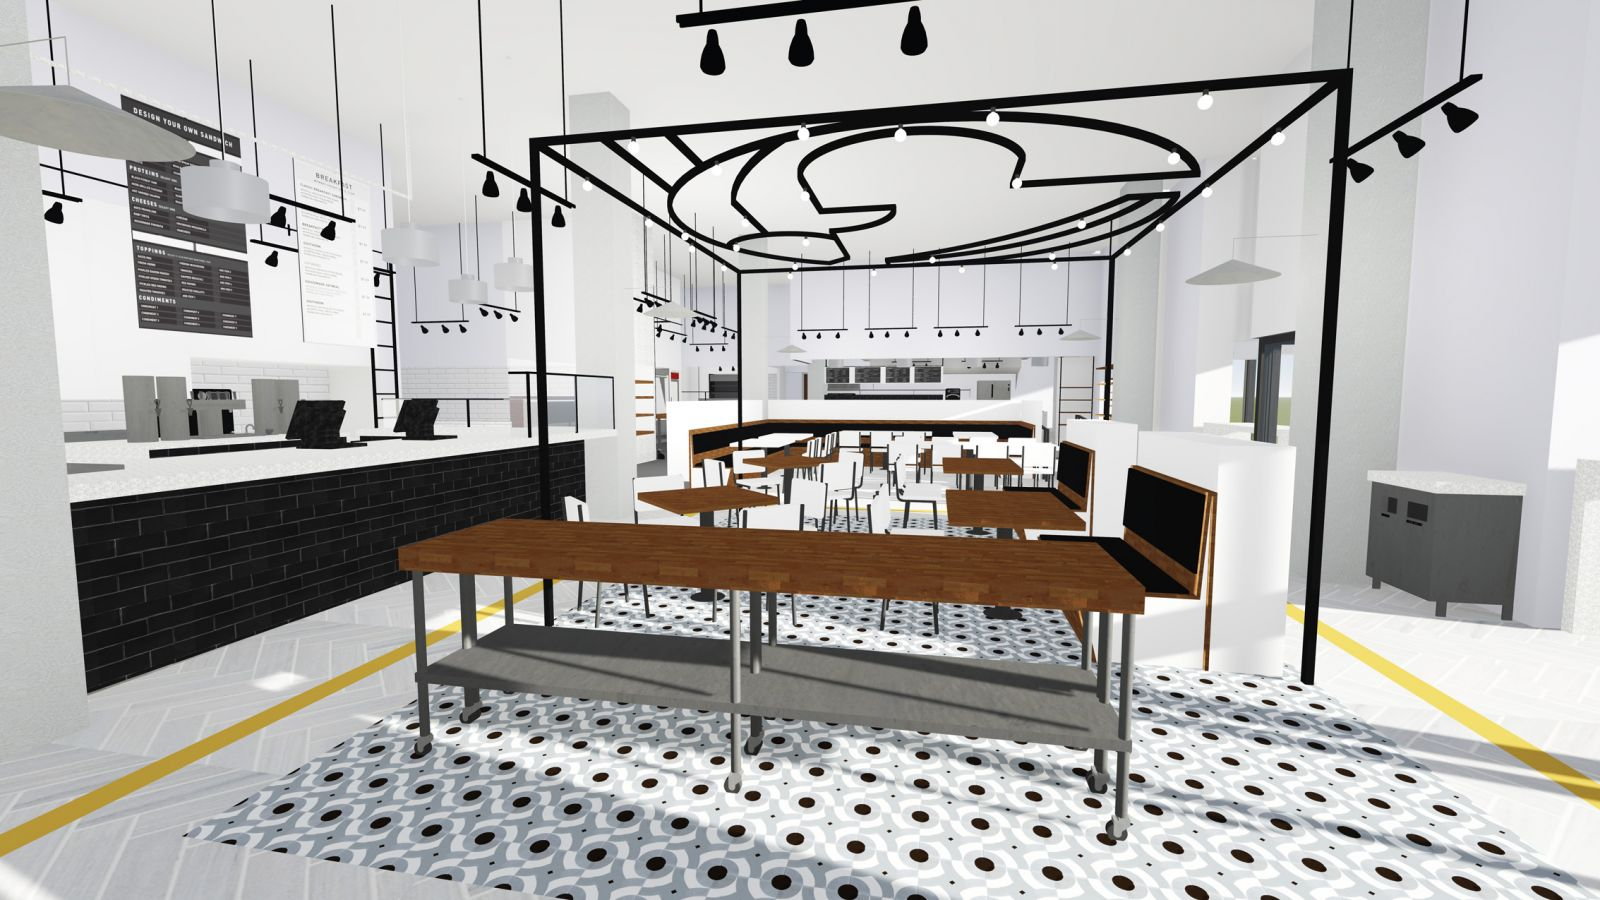 Rendering of the interior of the planned Caviar & Bananas, a restaurant from owners Kris and Margaret Furniss. The restaurant is scheduled to open in One City Plaza on Aug. 5. (Image/Provided)